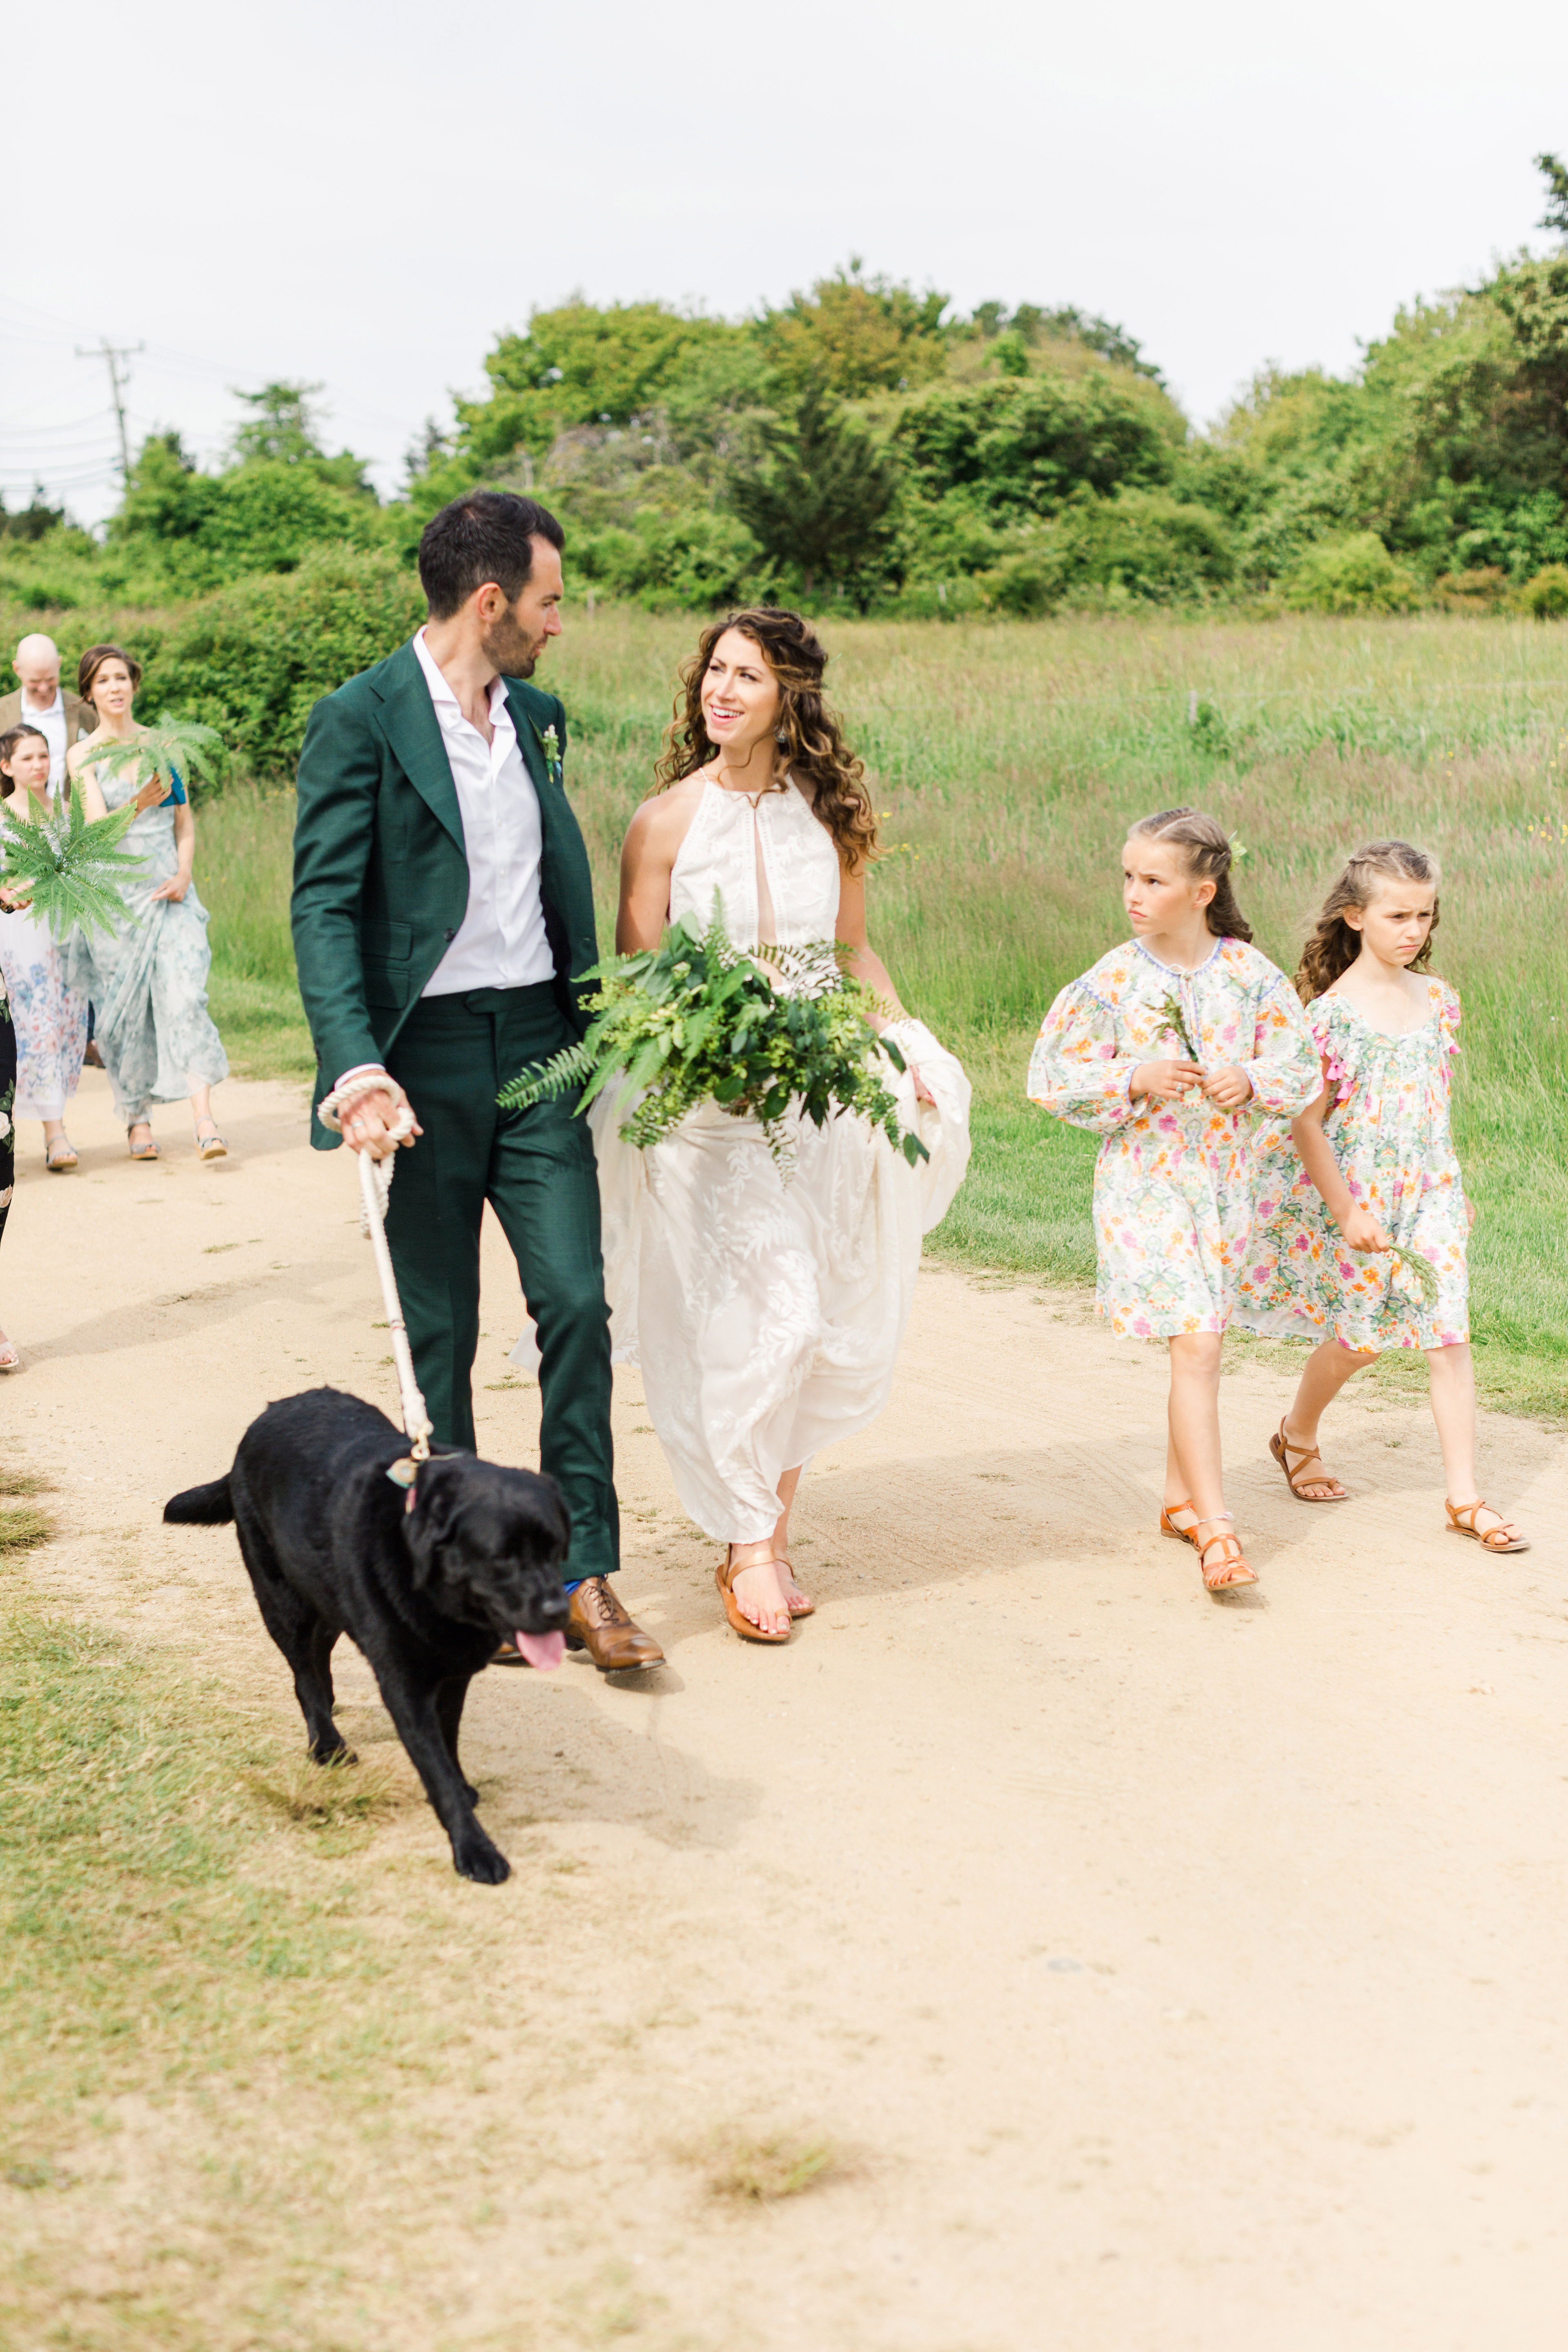 molly ed wedding parade with bride groom daughters and dogs